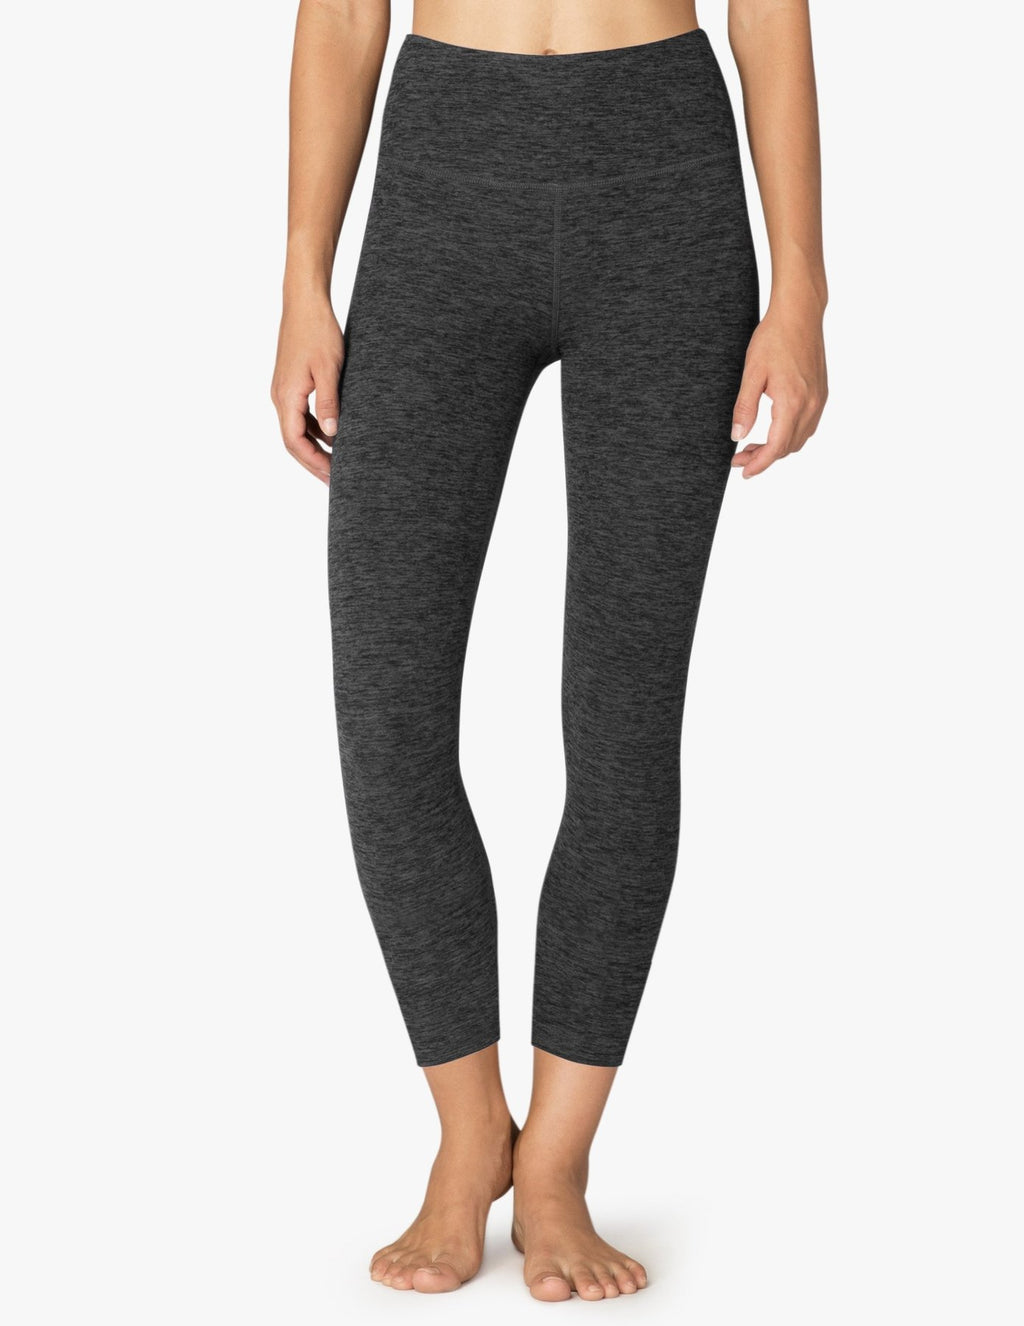 Beyond Yoga High Waisted Midi Legging Black/Charcoal